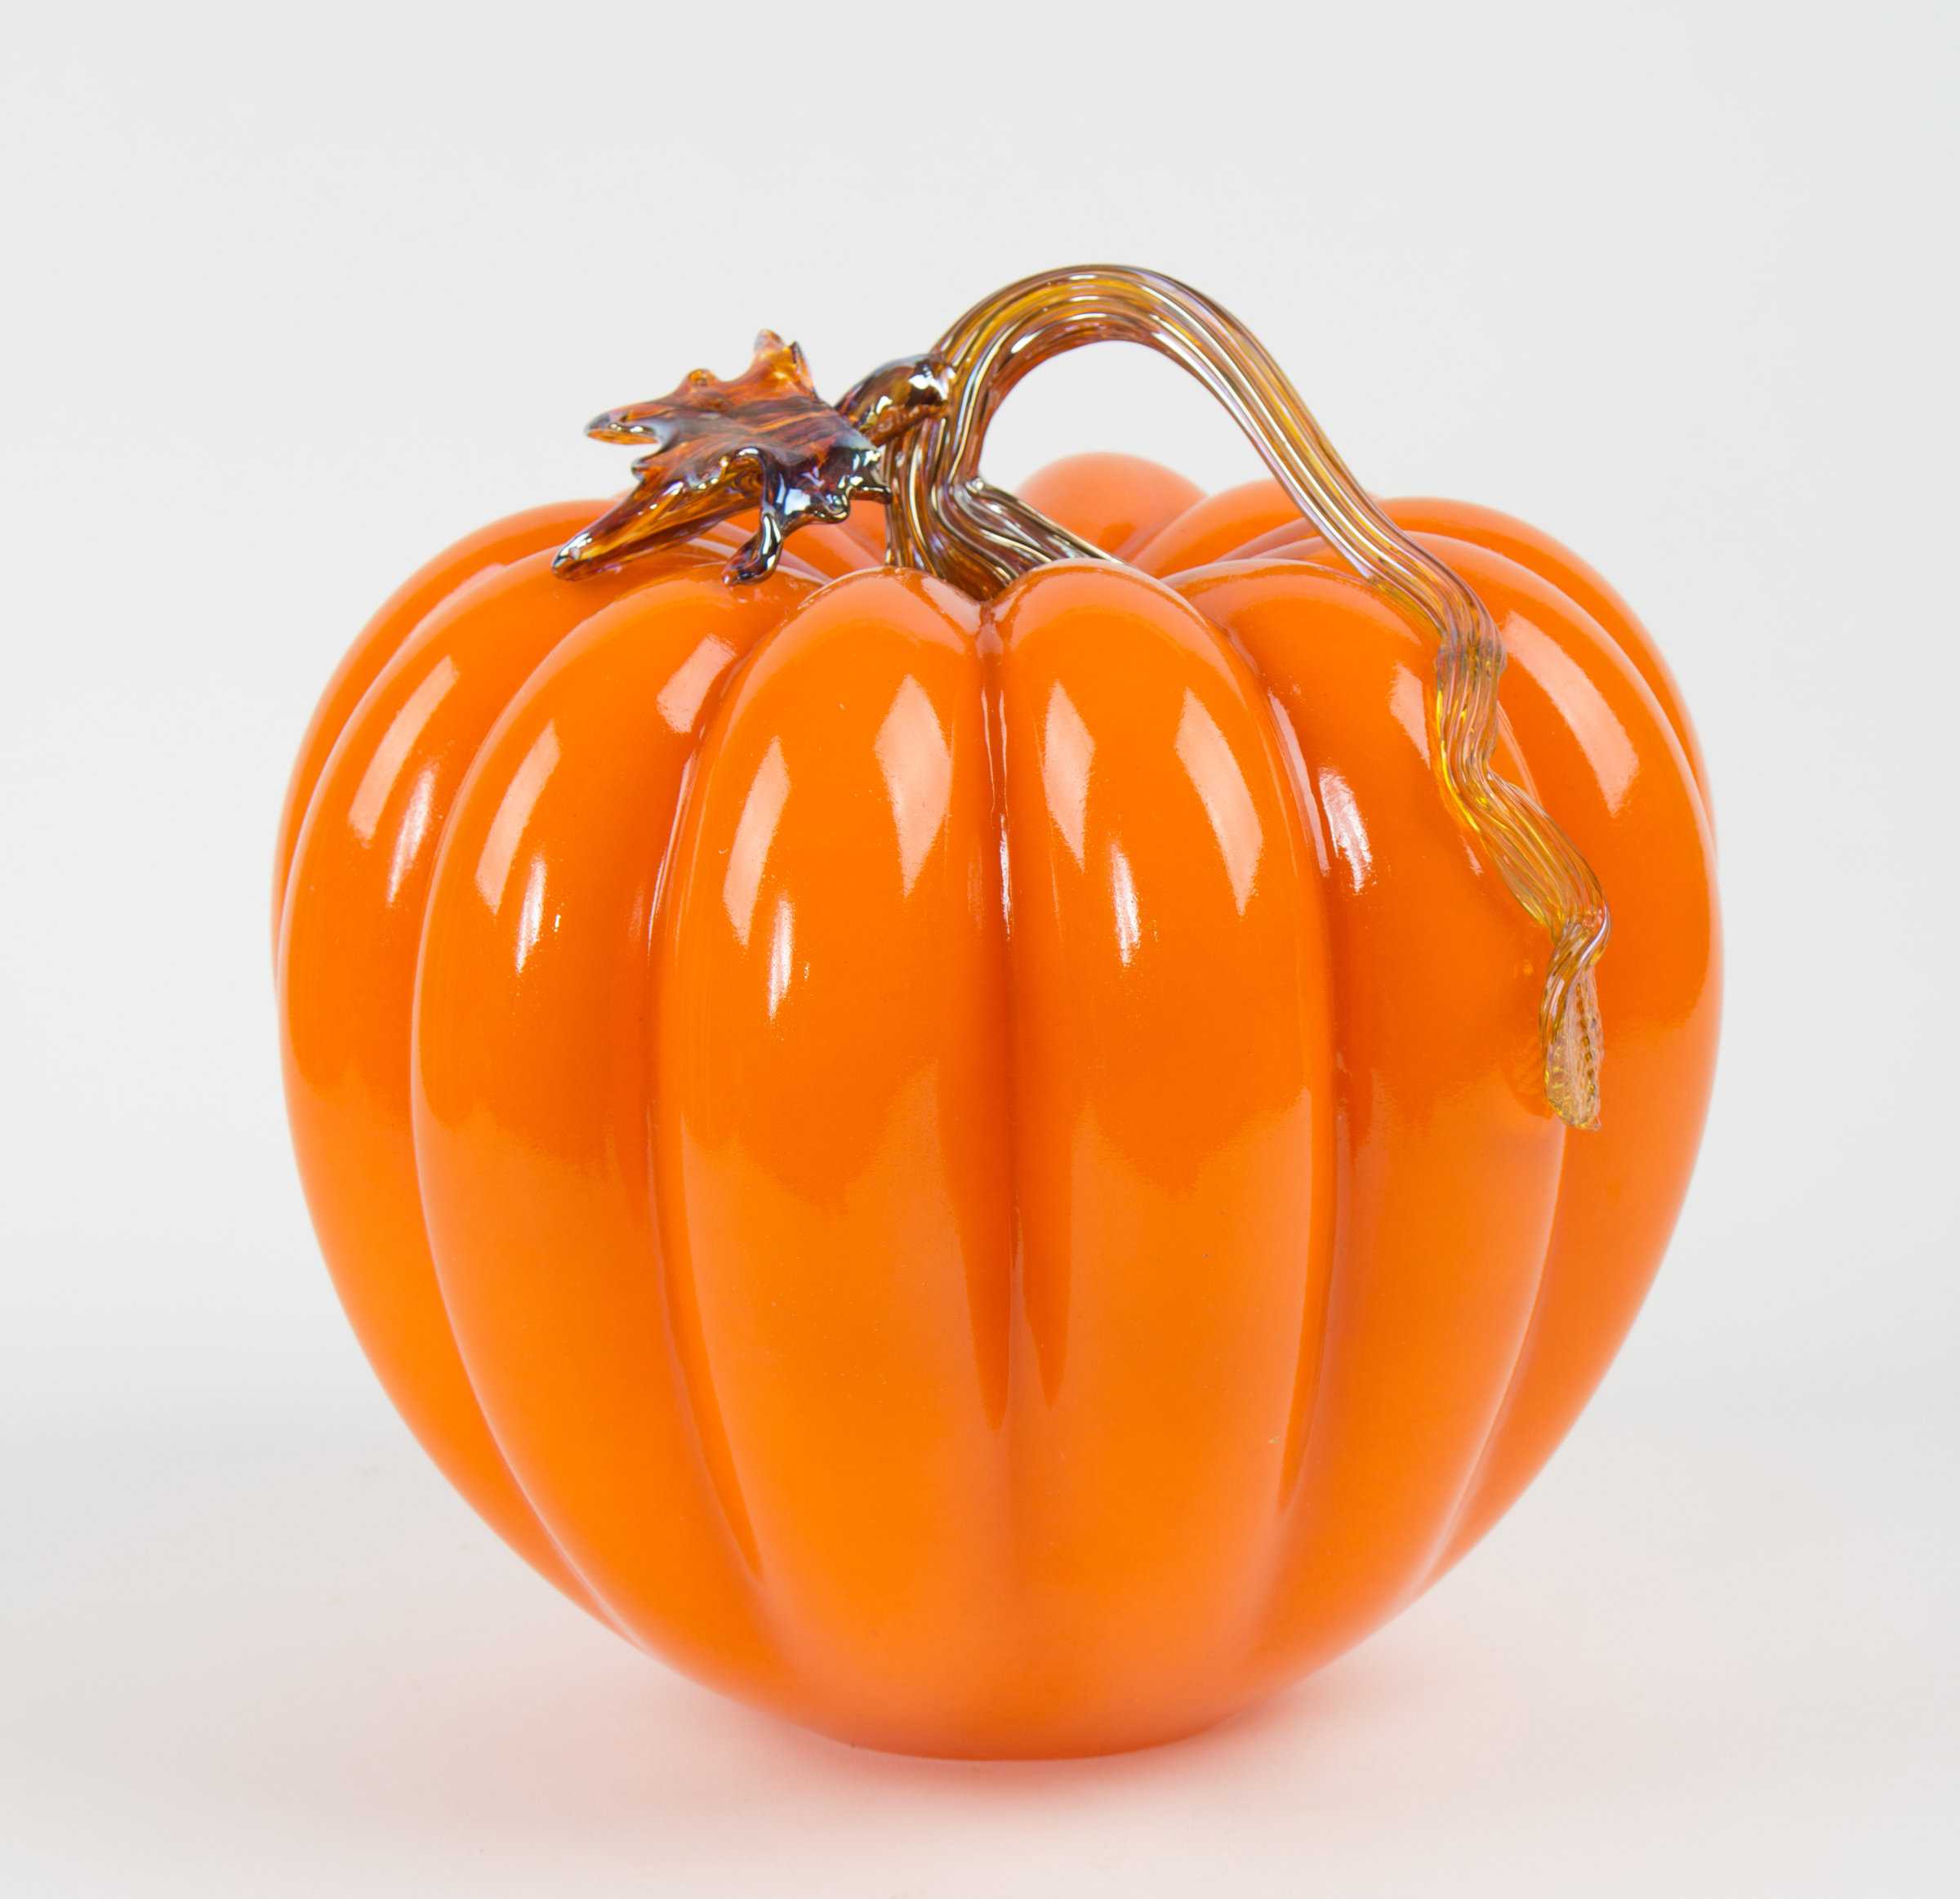 Large Orange Pumpkin By Treg Silkwood Art Glass Sculpture: silkwood glass